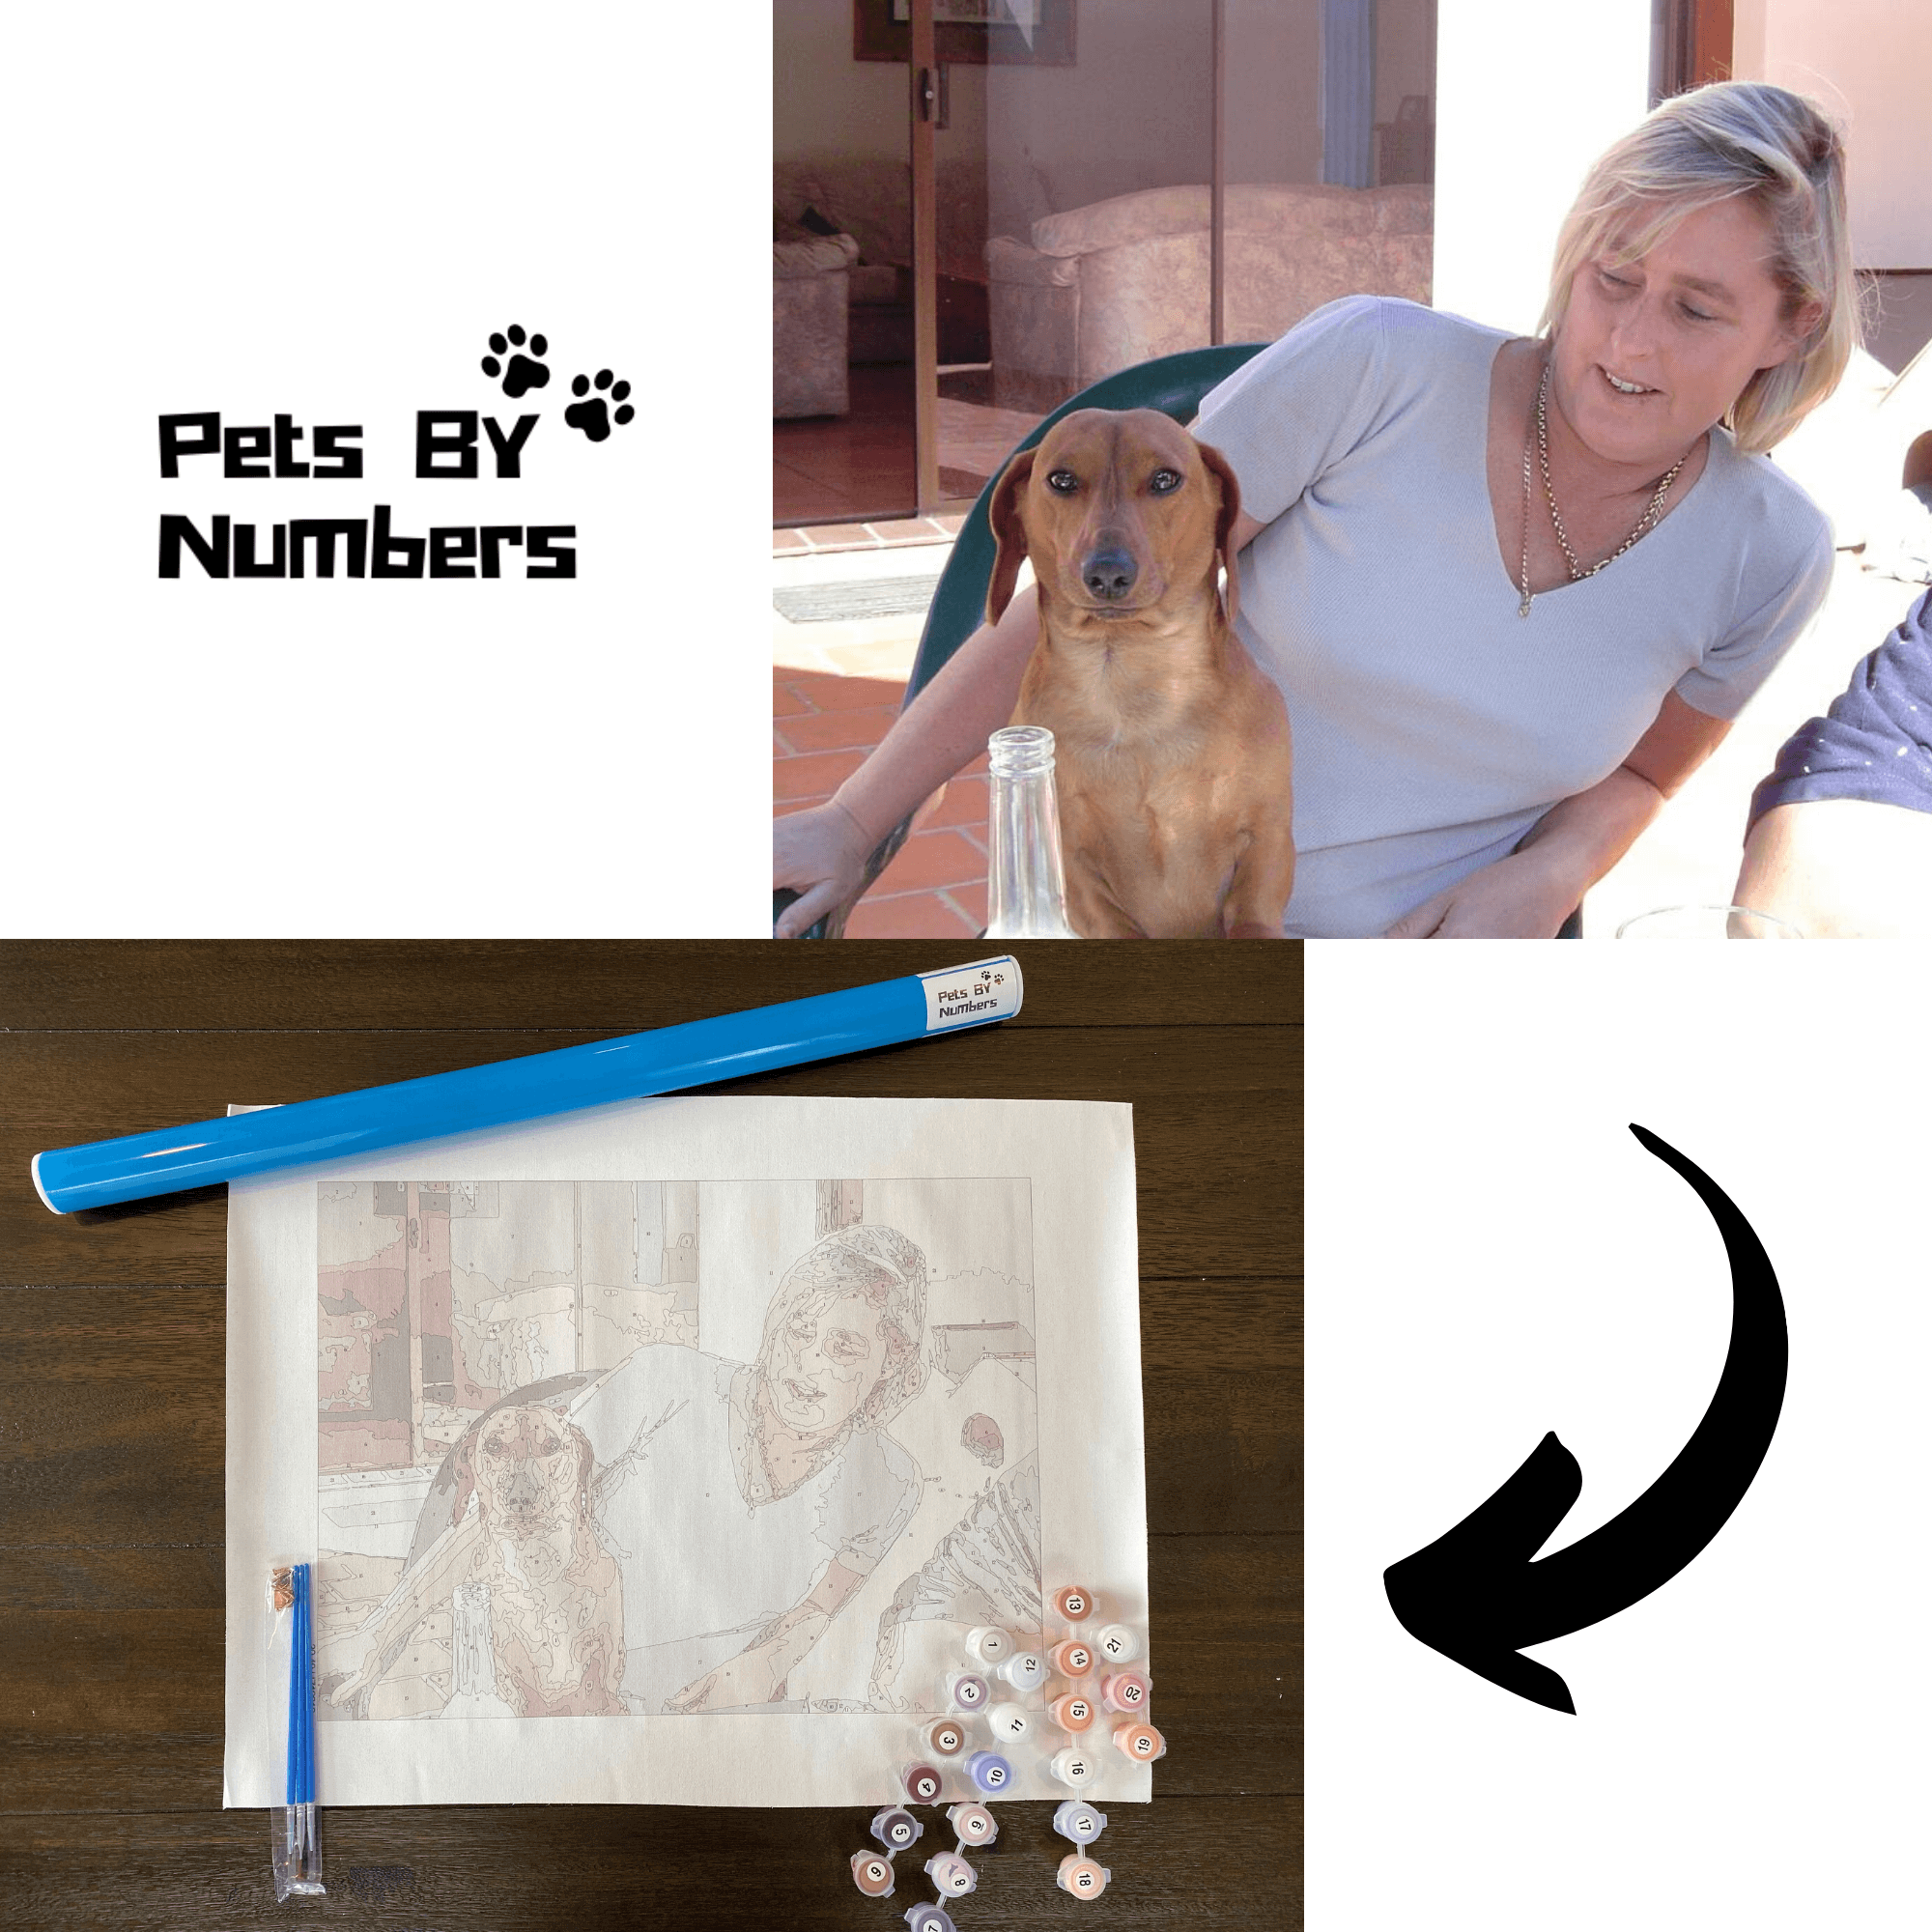 How can you paint your favorite pet?